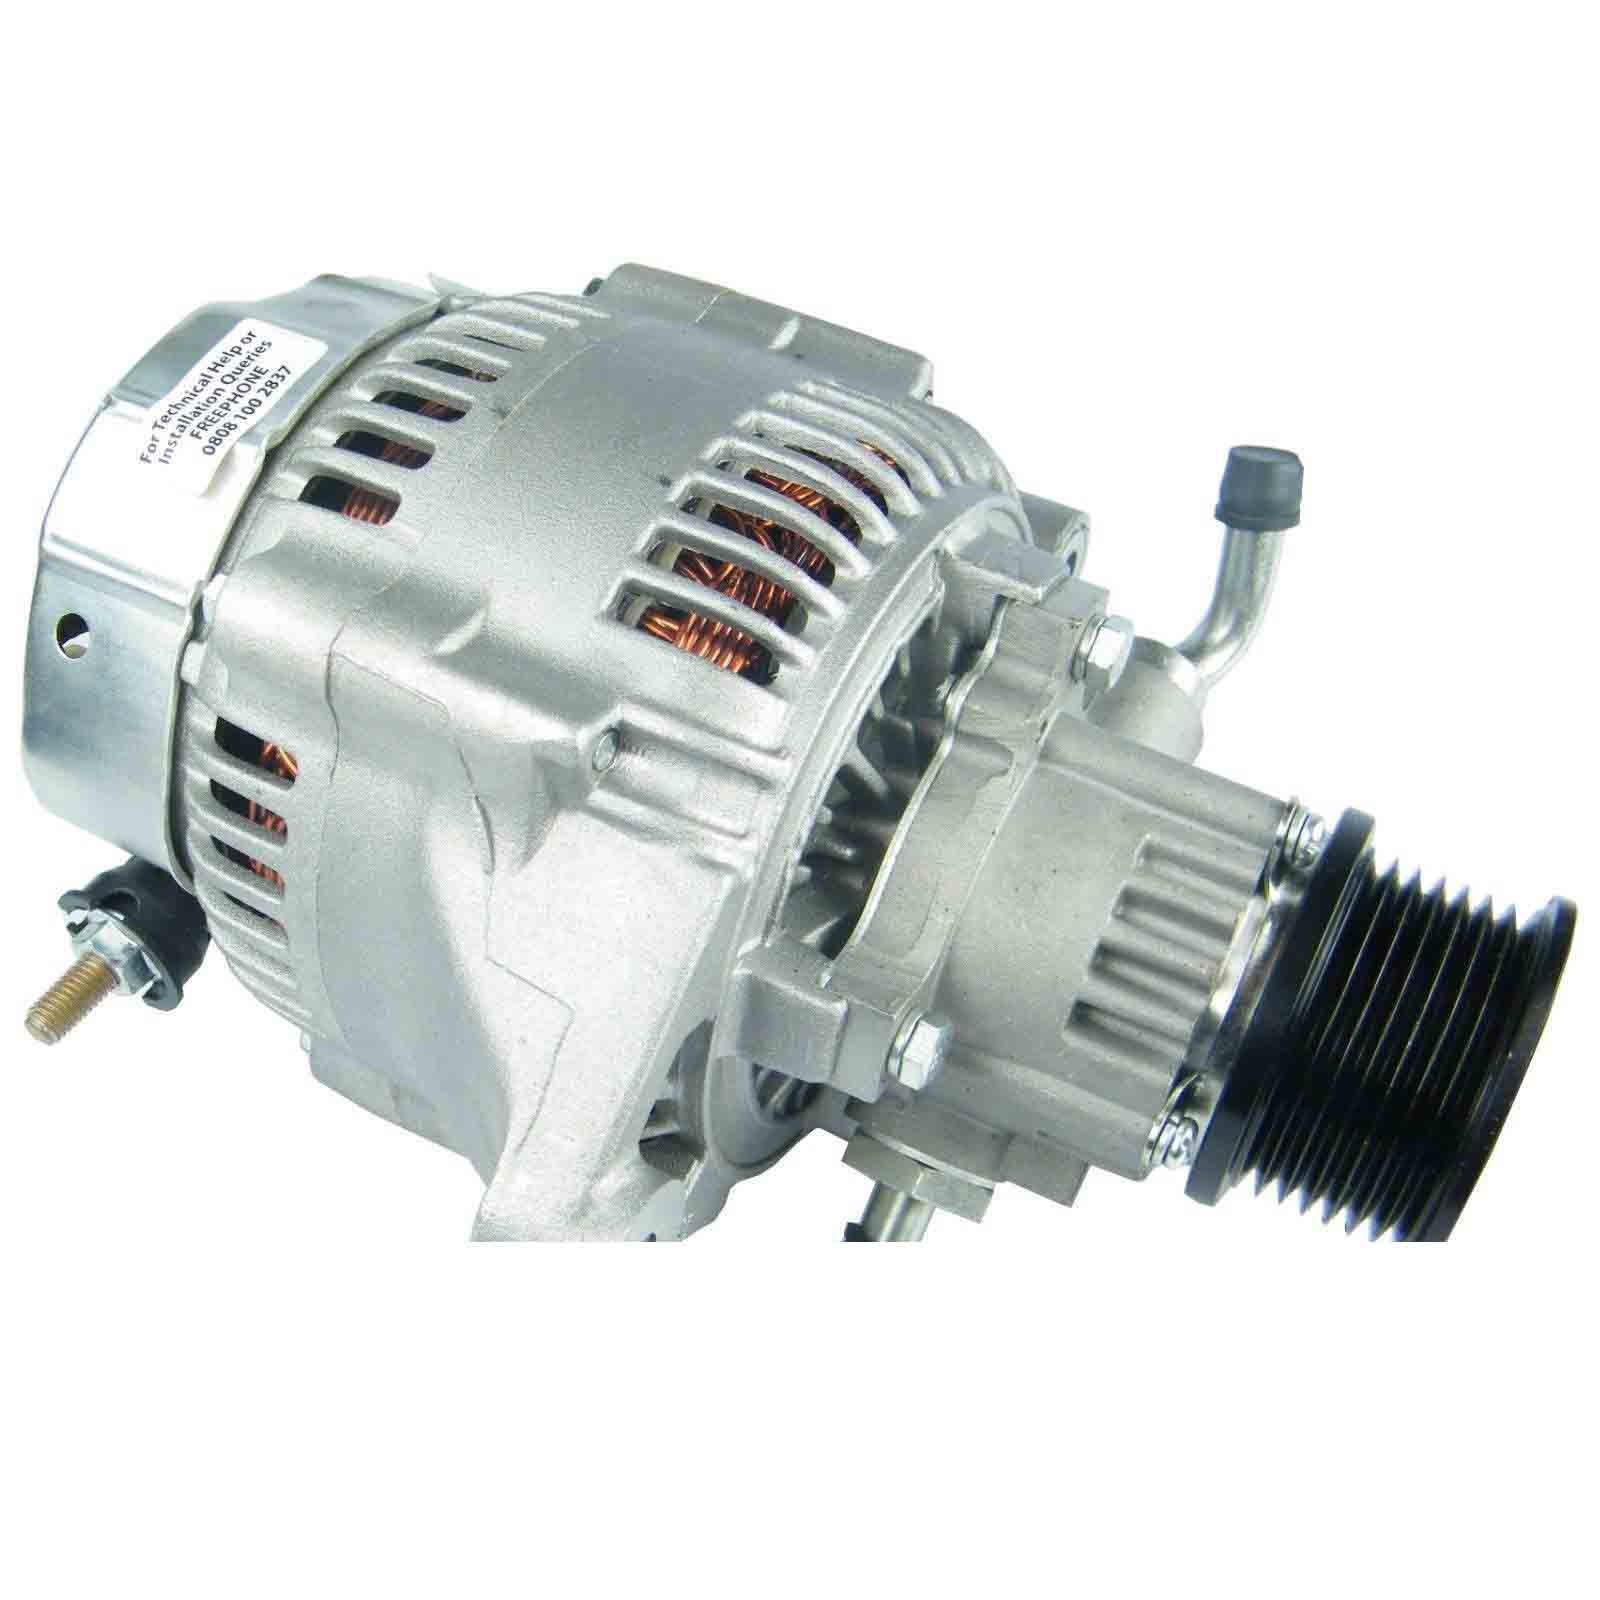 Land rover defender 90 110 td5 alternatore dinamo con pompa vuoto